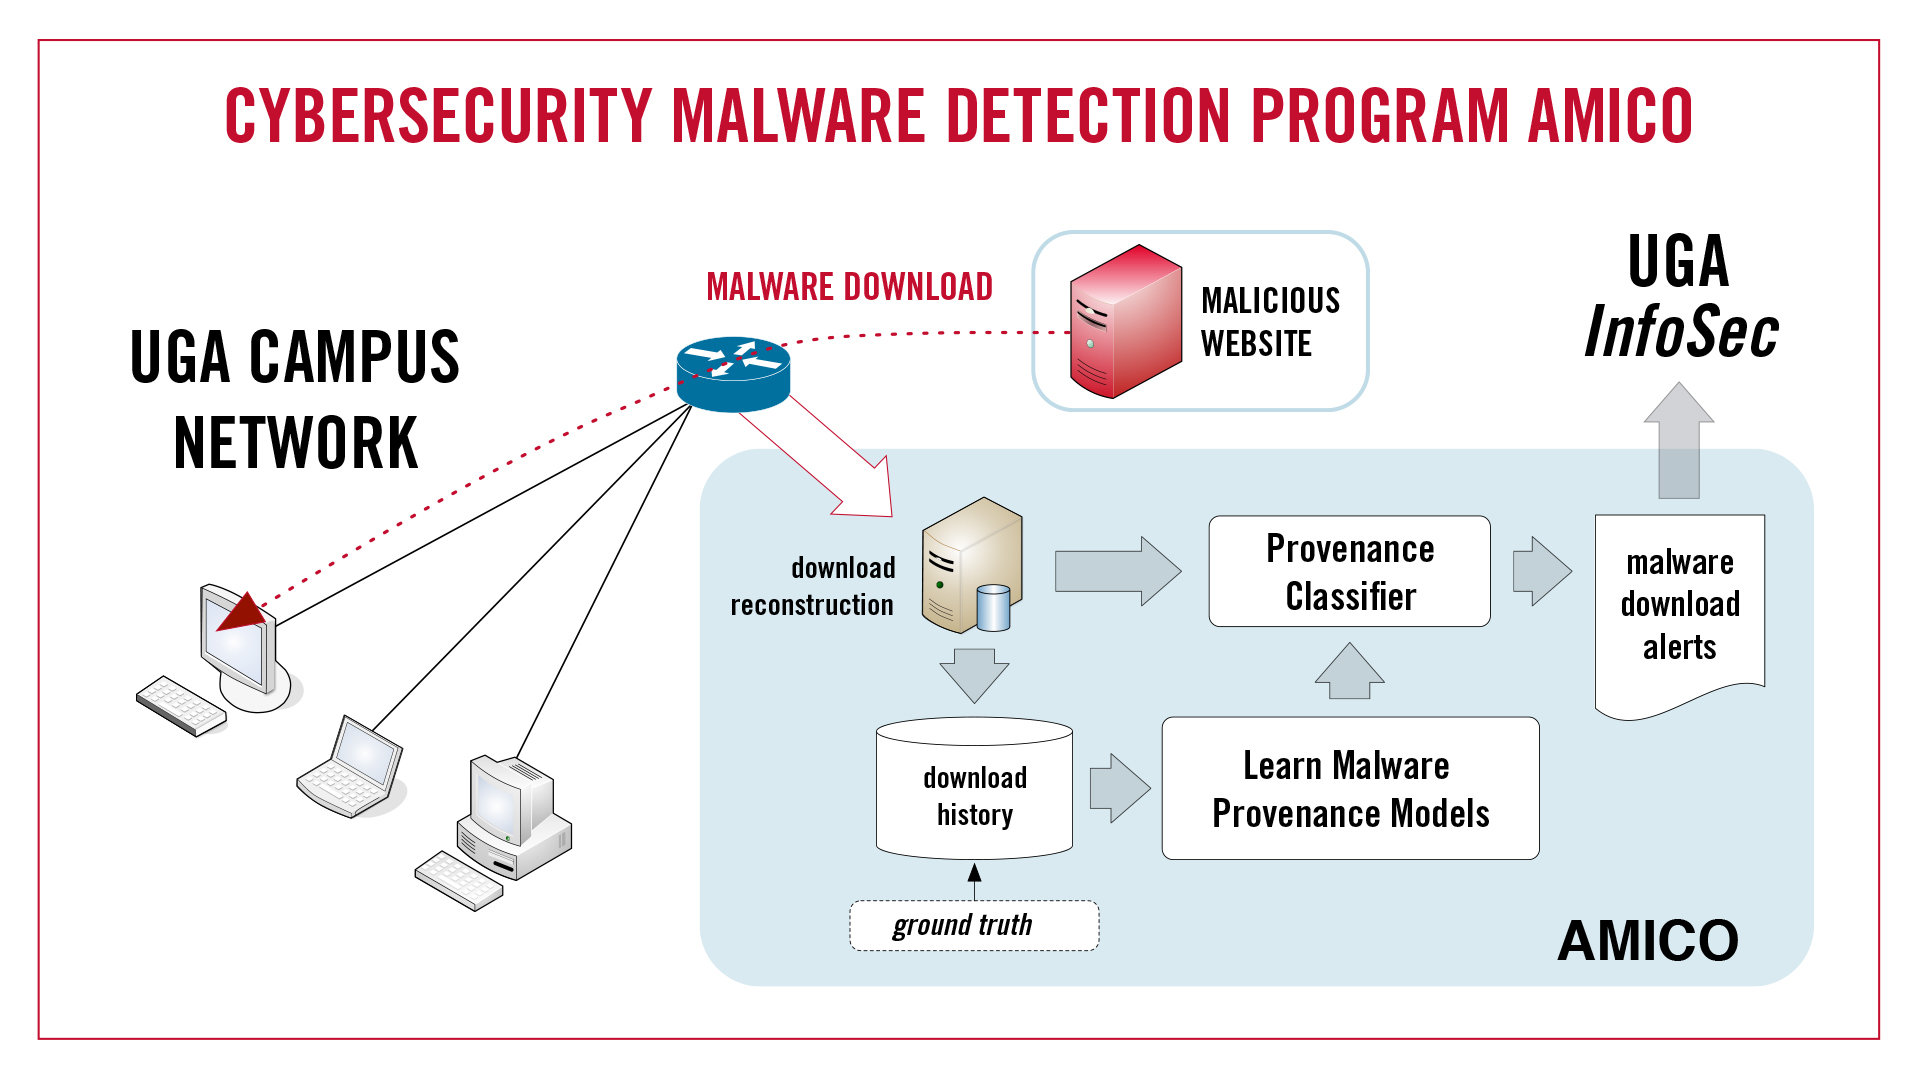 Georgia malware, cybersecurity research helps make internet safer